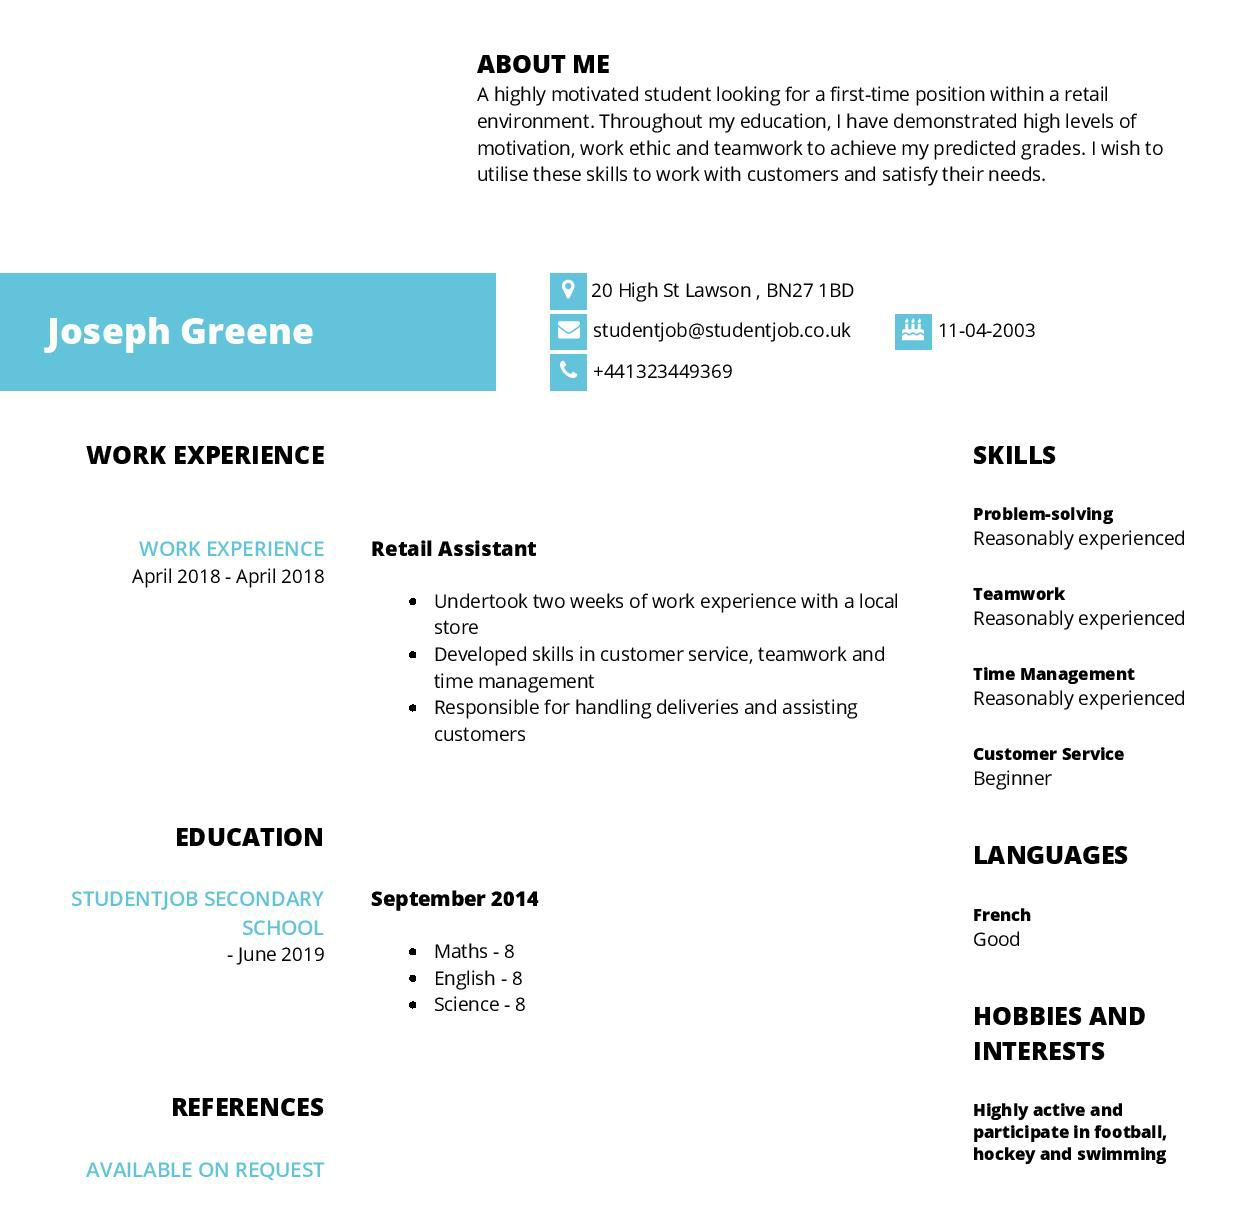 003 Phenomenal Resume Template For First Job Highest Clarity  Student Australia After Time JobseekerFull